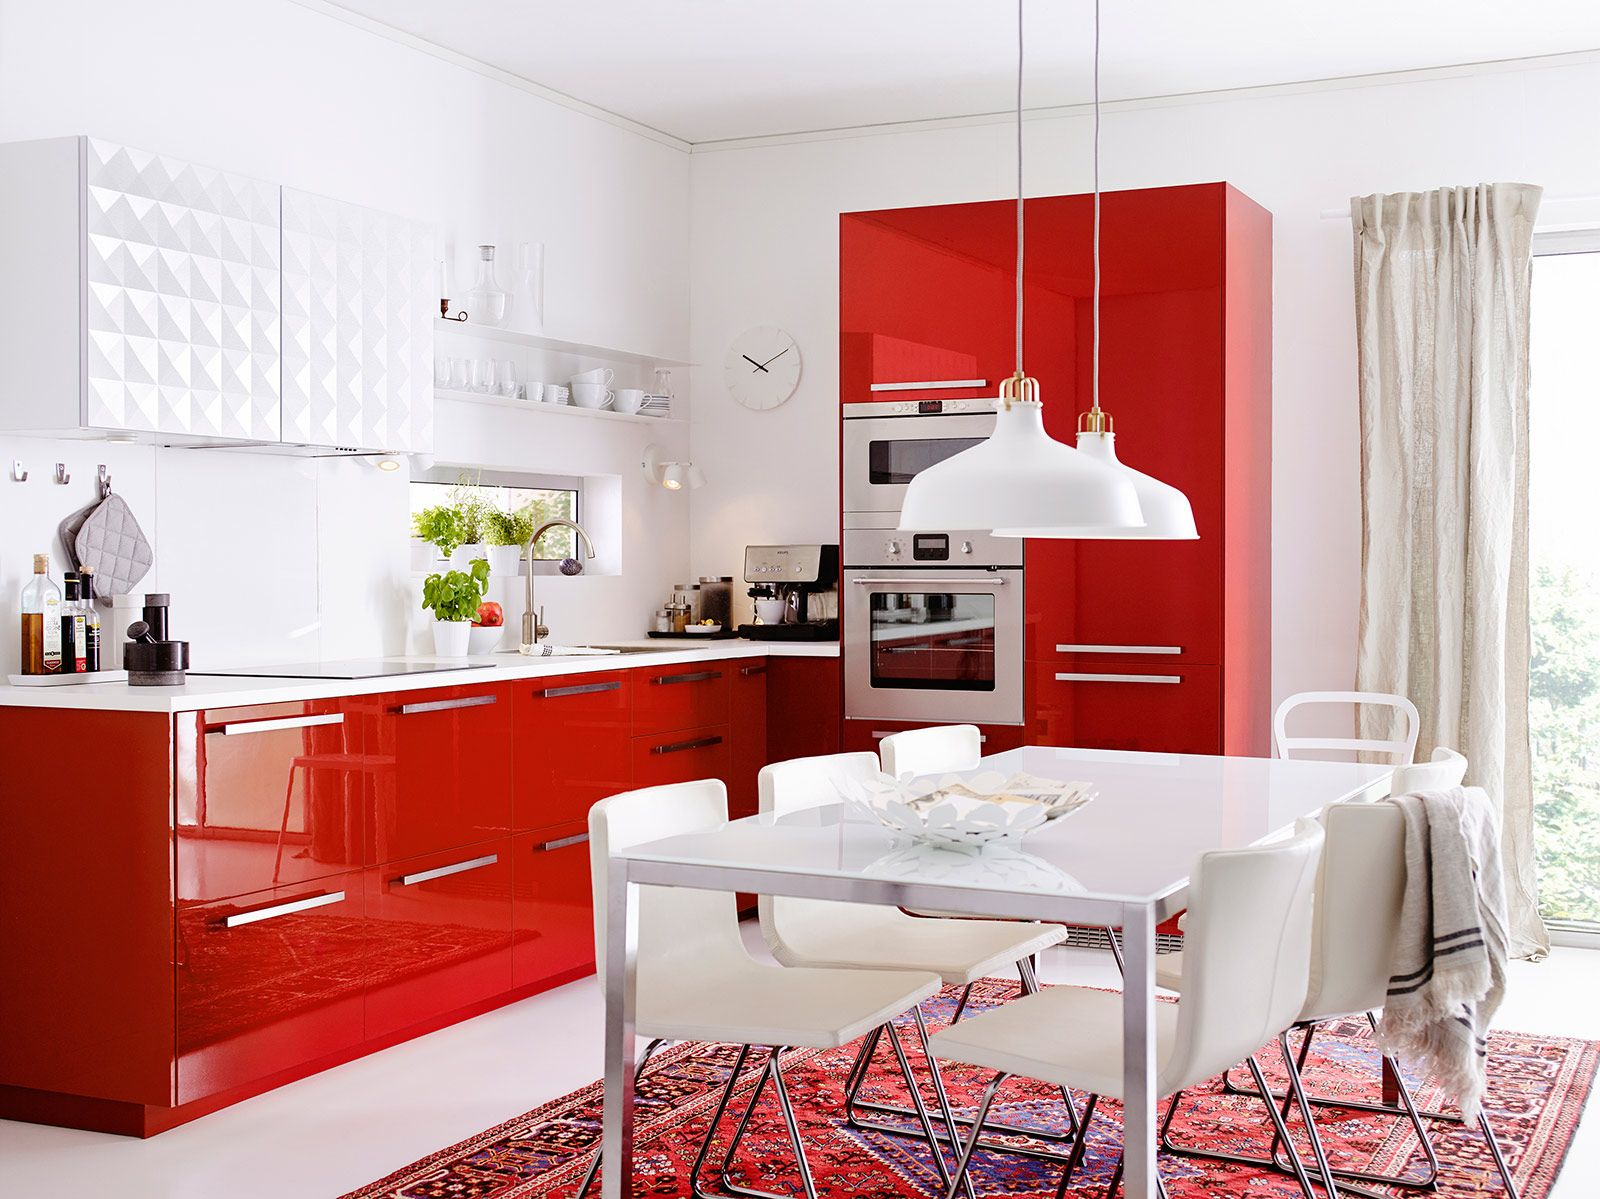 Cucine colorate. Come un quadro contemporaneo | Cucina rossa ...